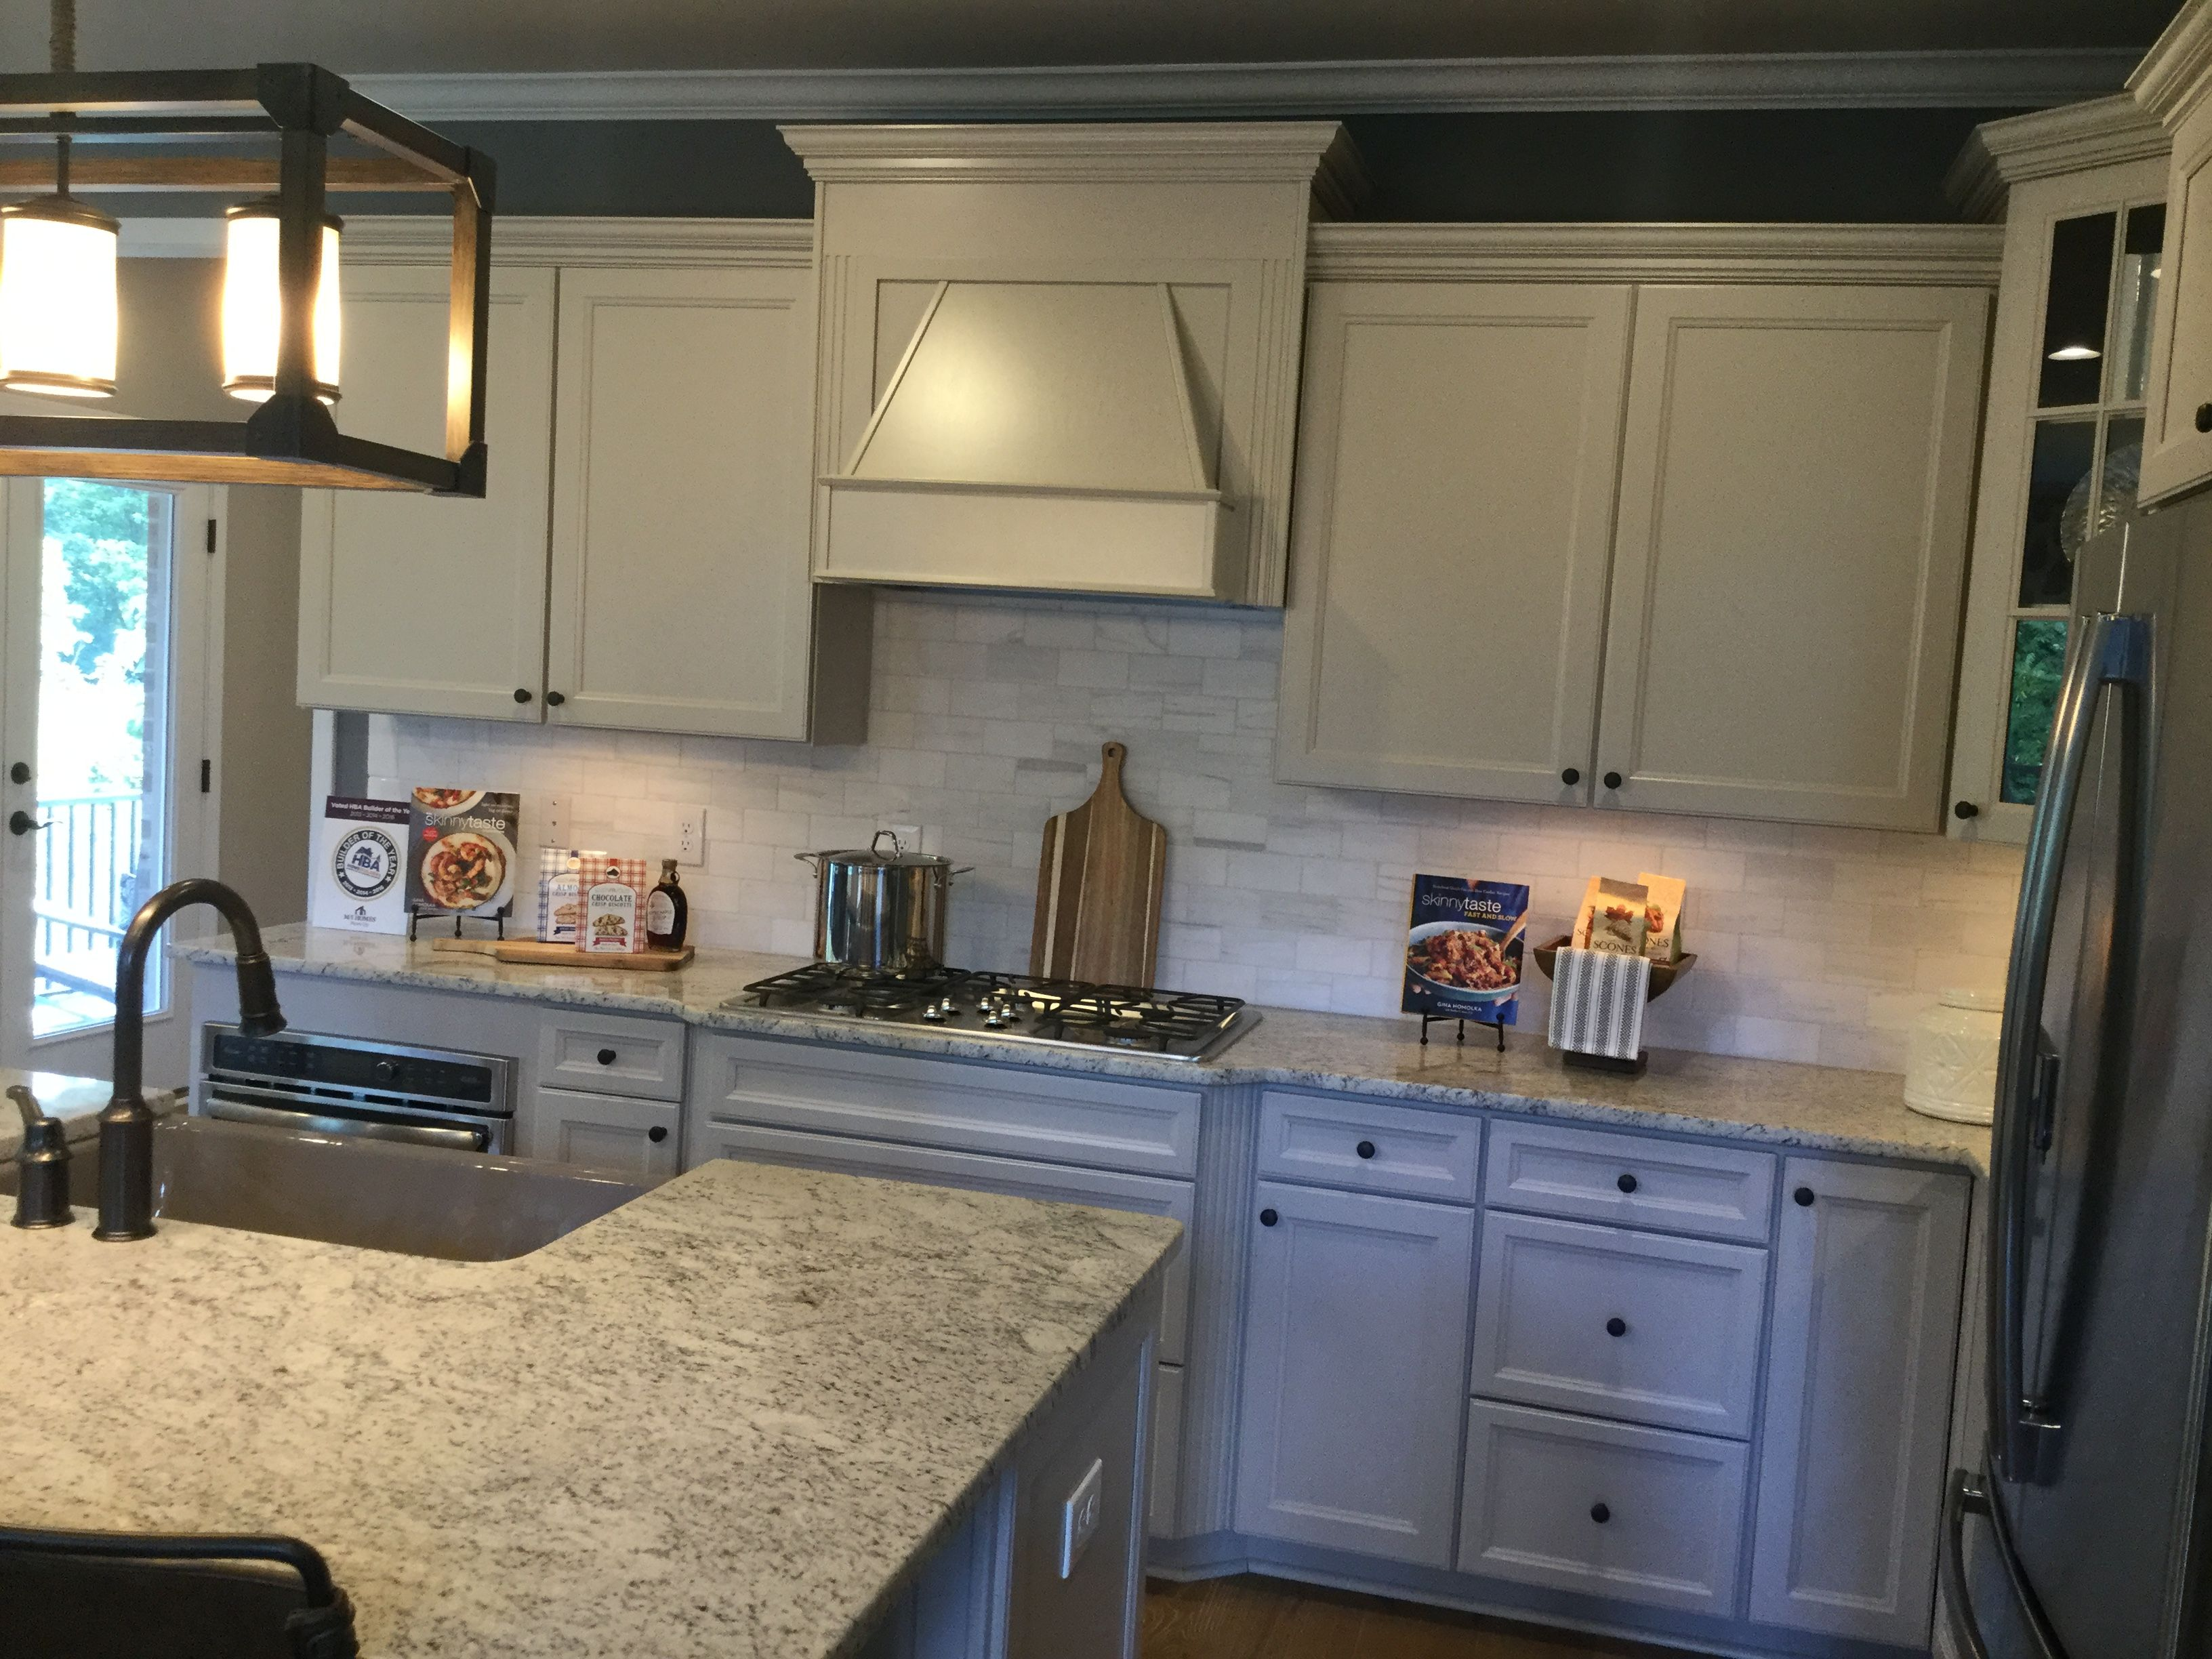 Durham Glacier Gray Cabinets Home Kitchens Grey Cabinets Kitchen Cabinets